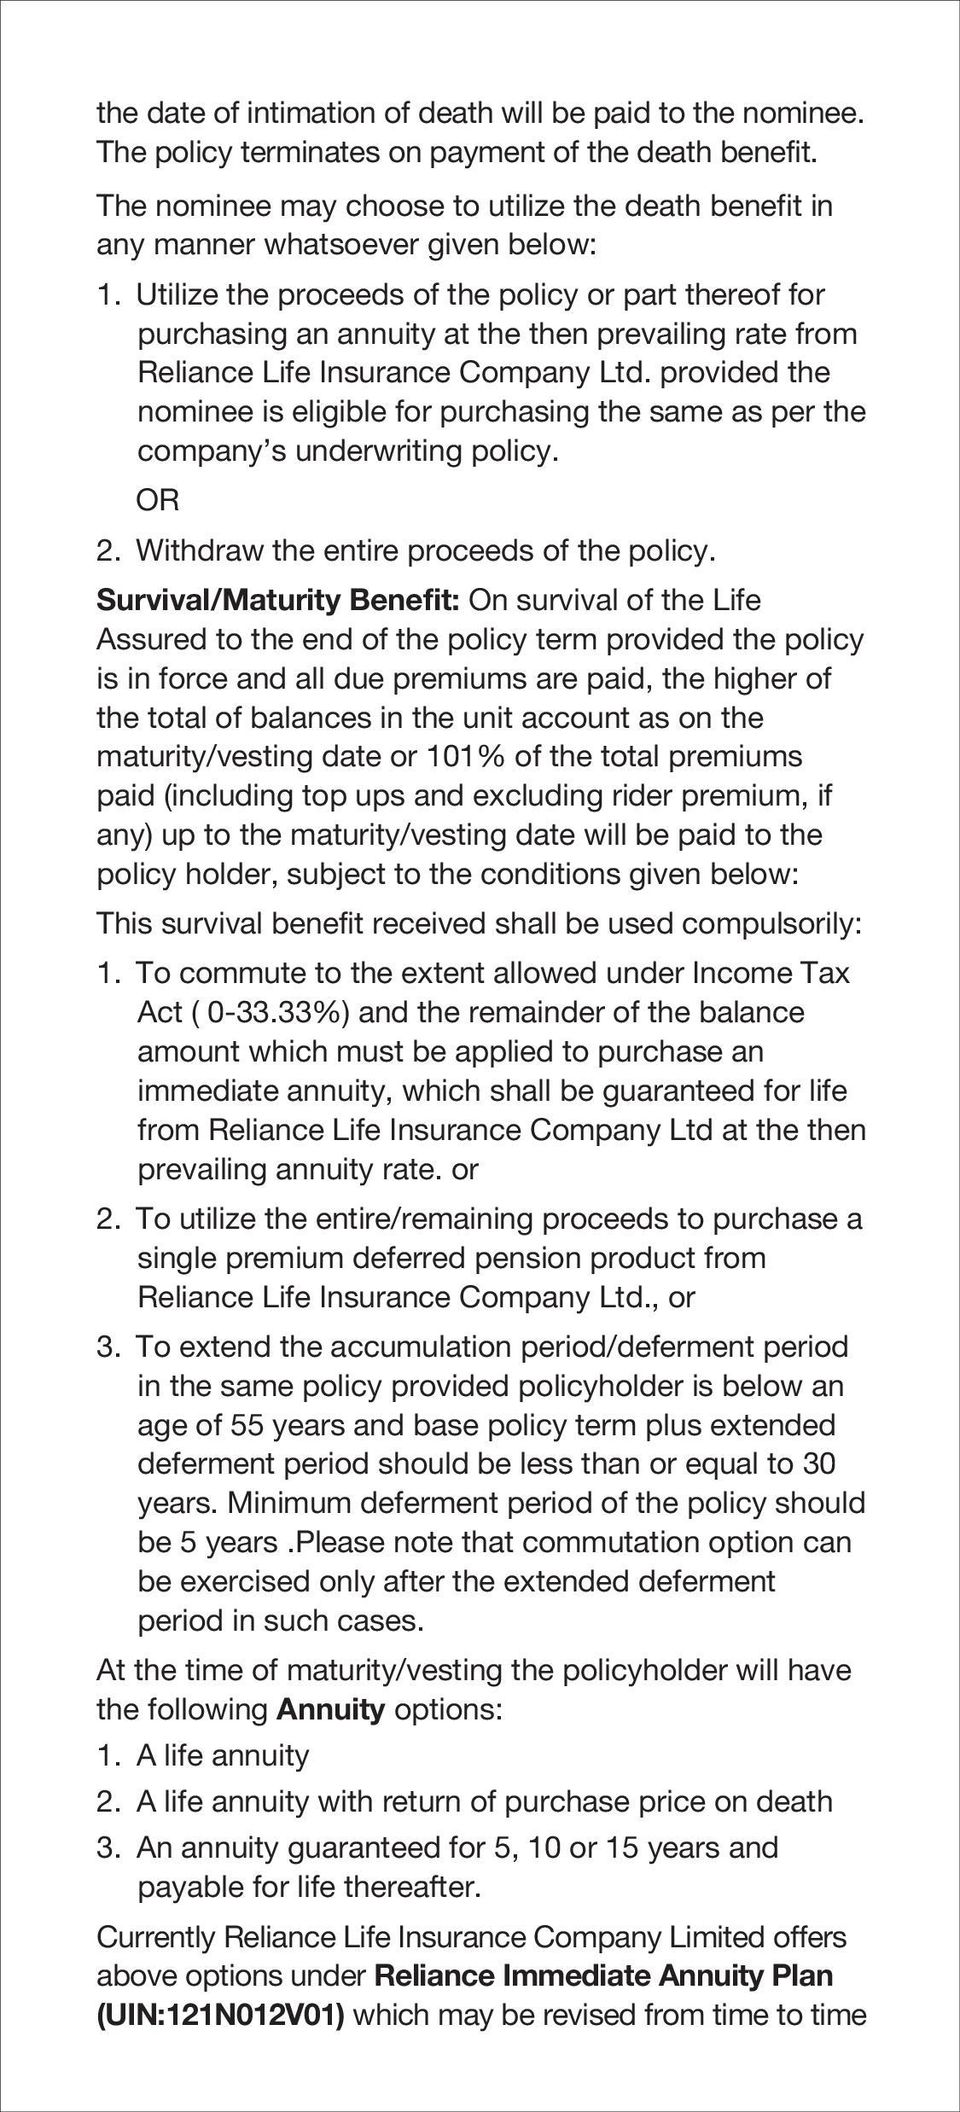 Utilize the proceeds of the policy or part thereof for purchasing an annuity at the then prevailing rate from Reliance Life Insurance Company Ltd.